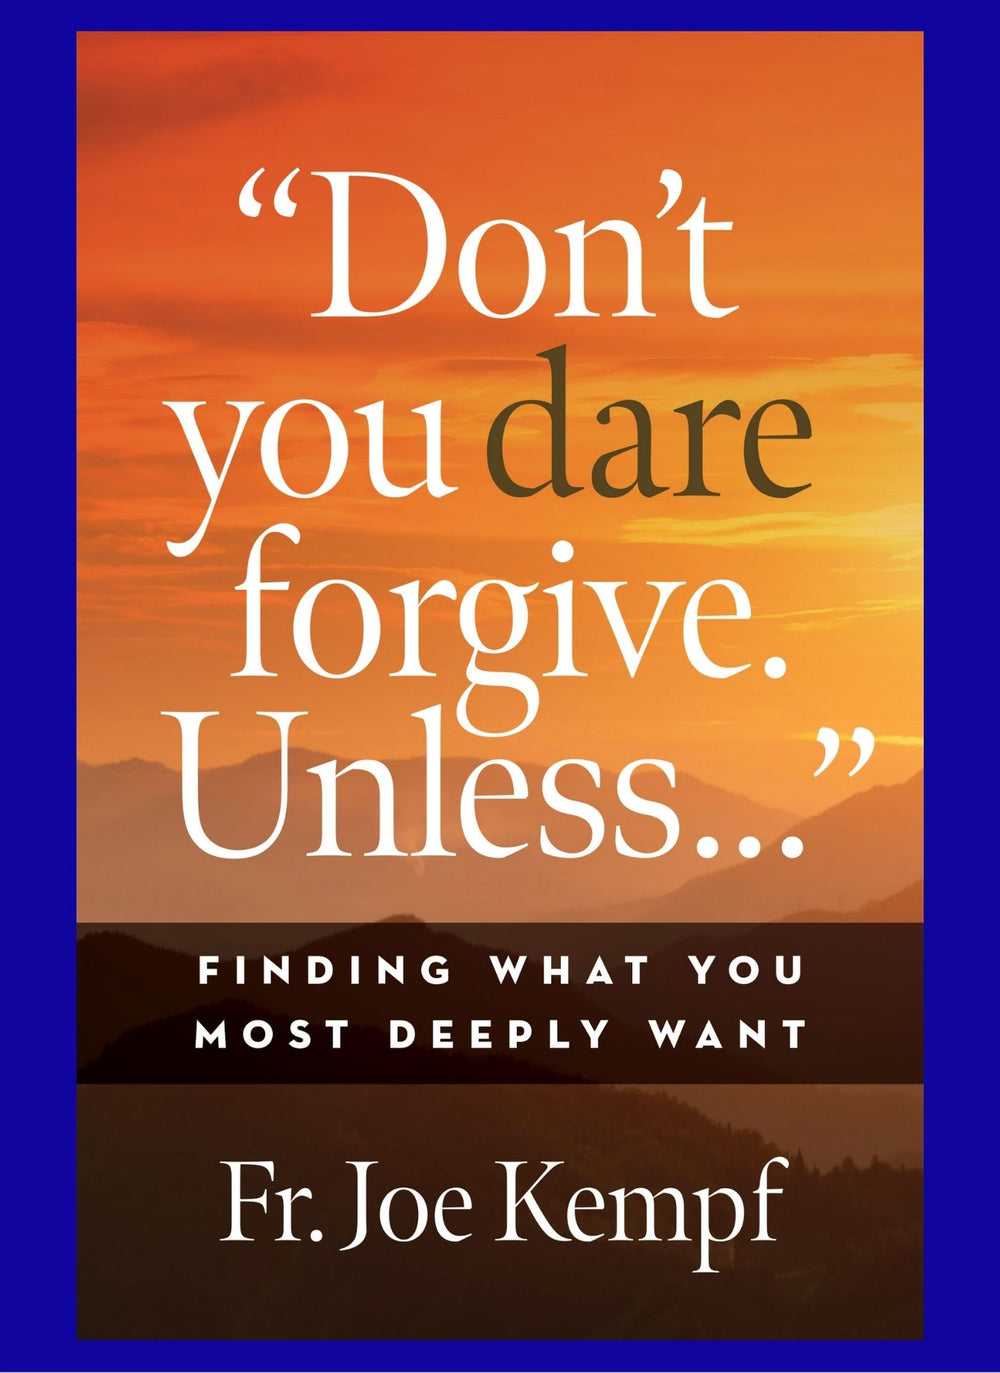 """Don't You Dare Forgive. Unless…"